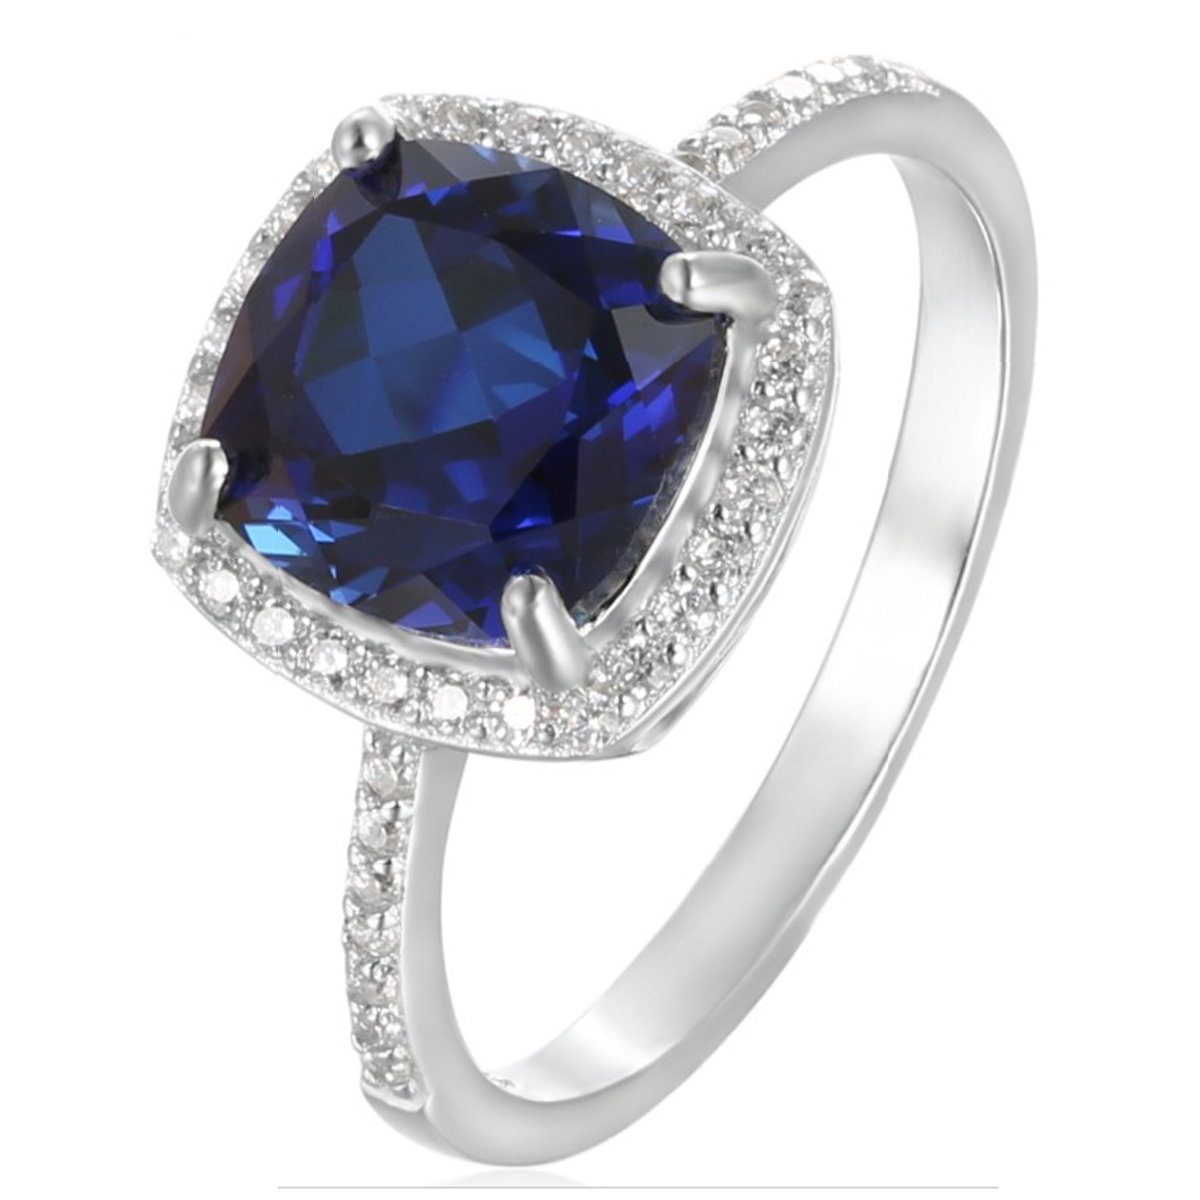 sale rings j and id carat for cushion diamond jewelry platinum engagement ring cut master sapphire org